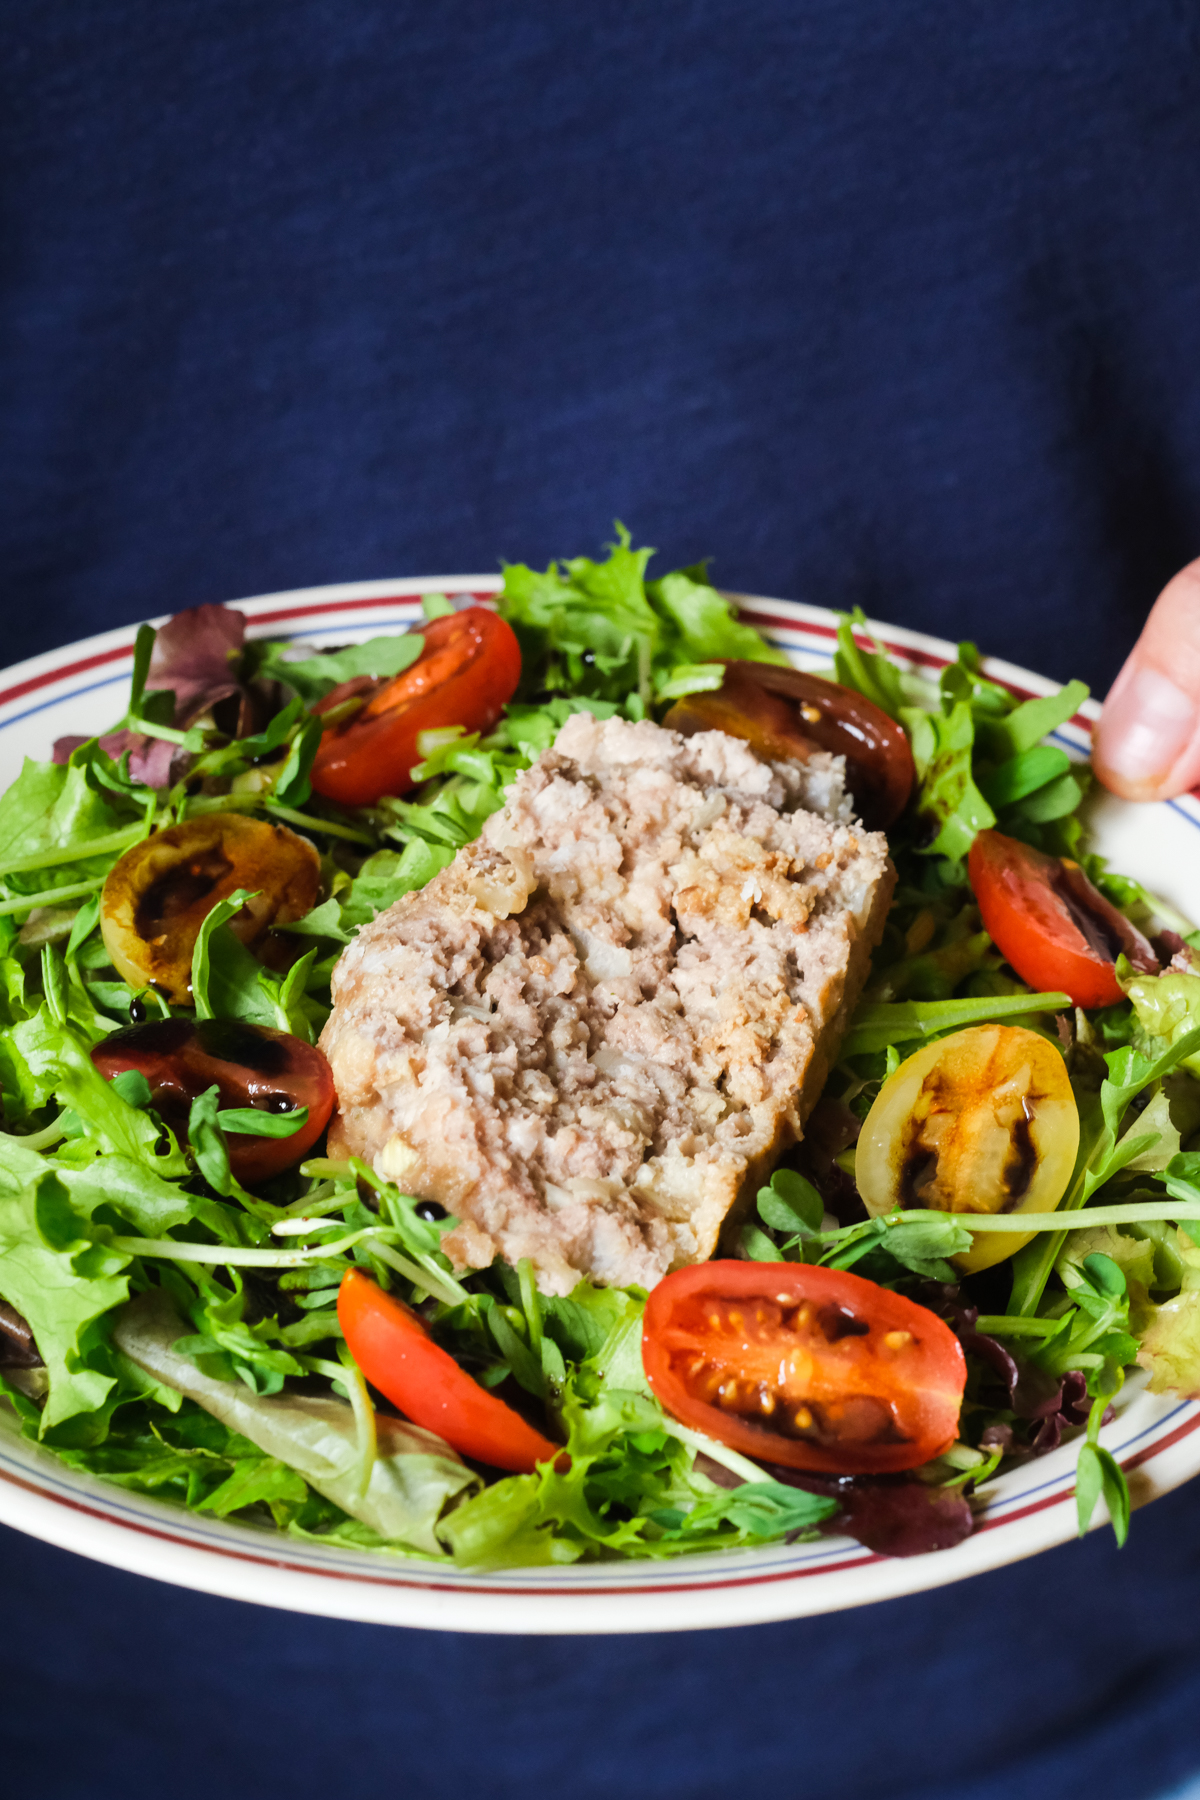 meatloaf salad with greens tomatoes and balsamic